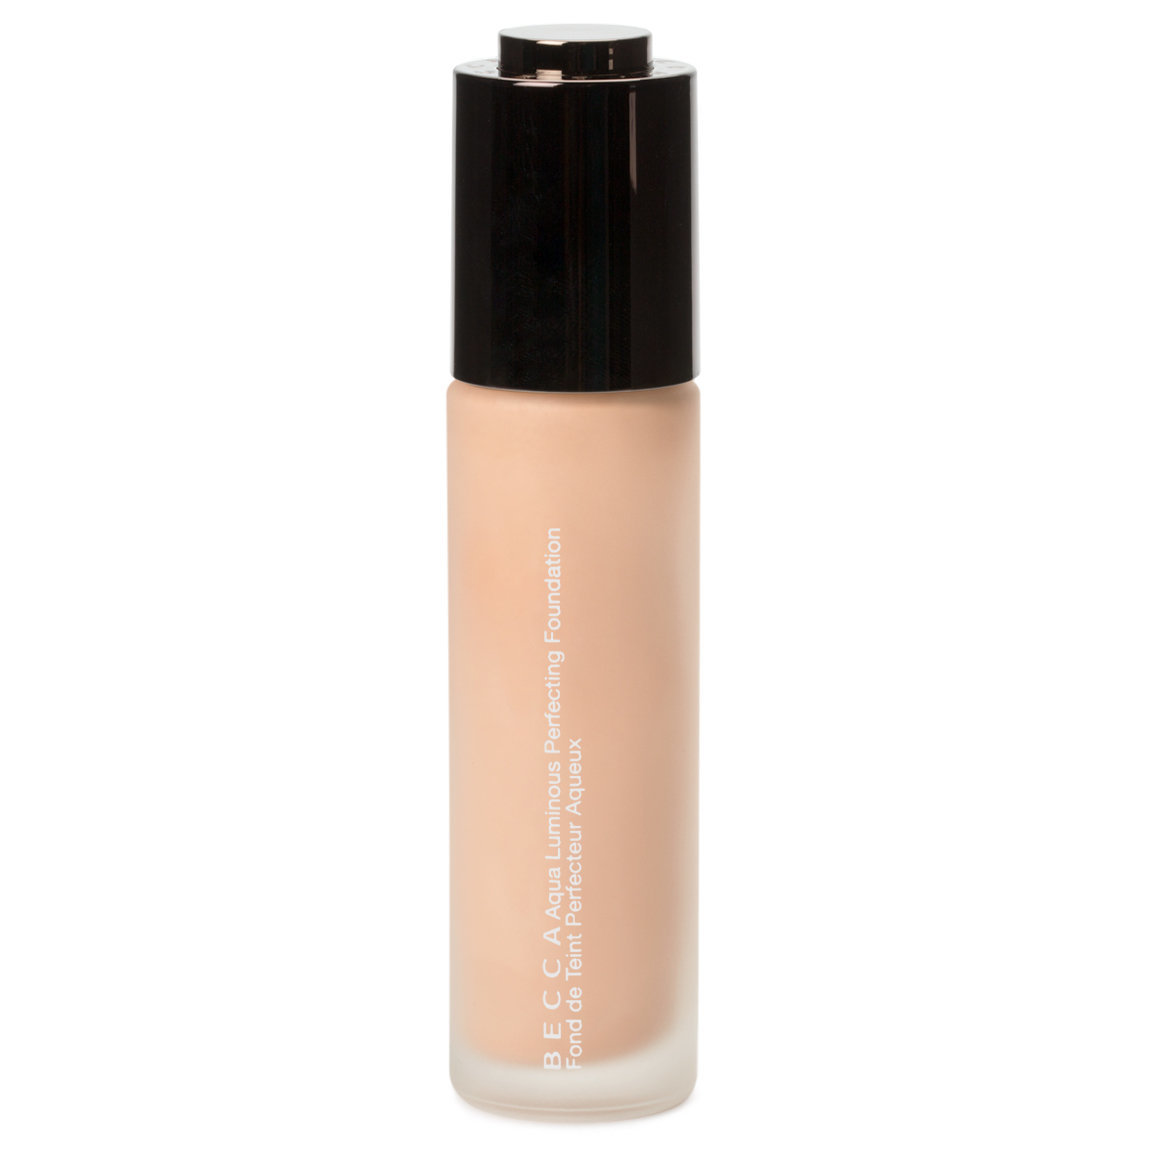 BECCA Aqua Luminous Perfecting Foundation Fair